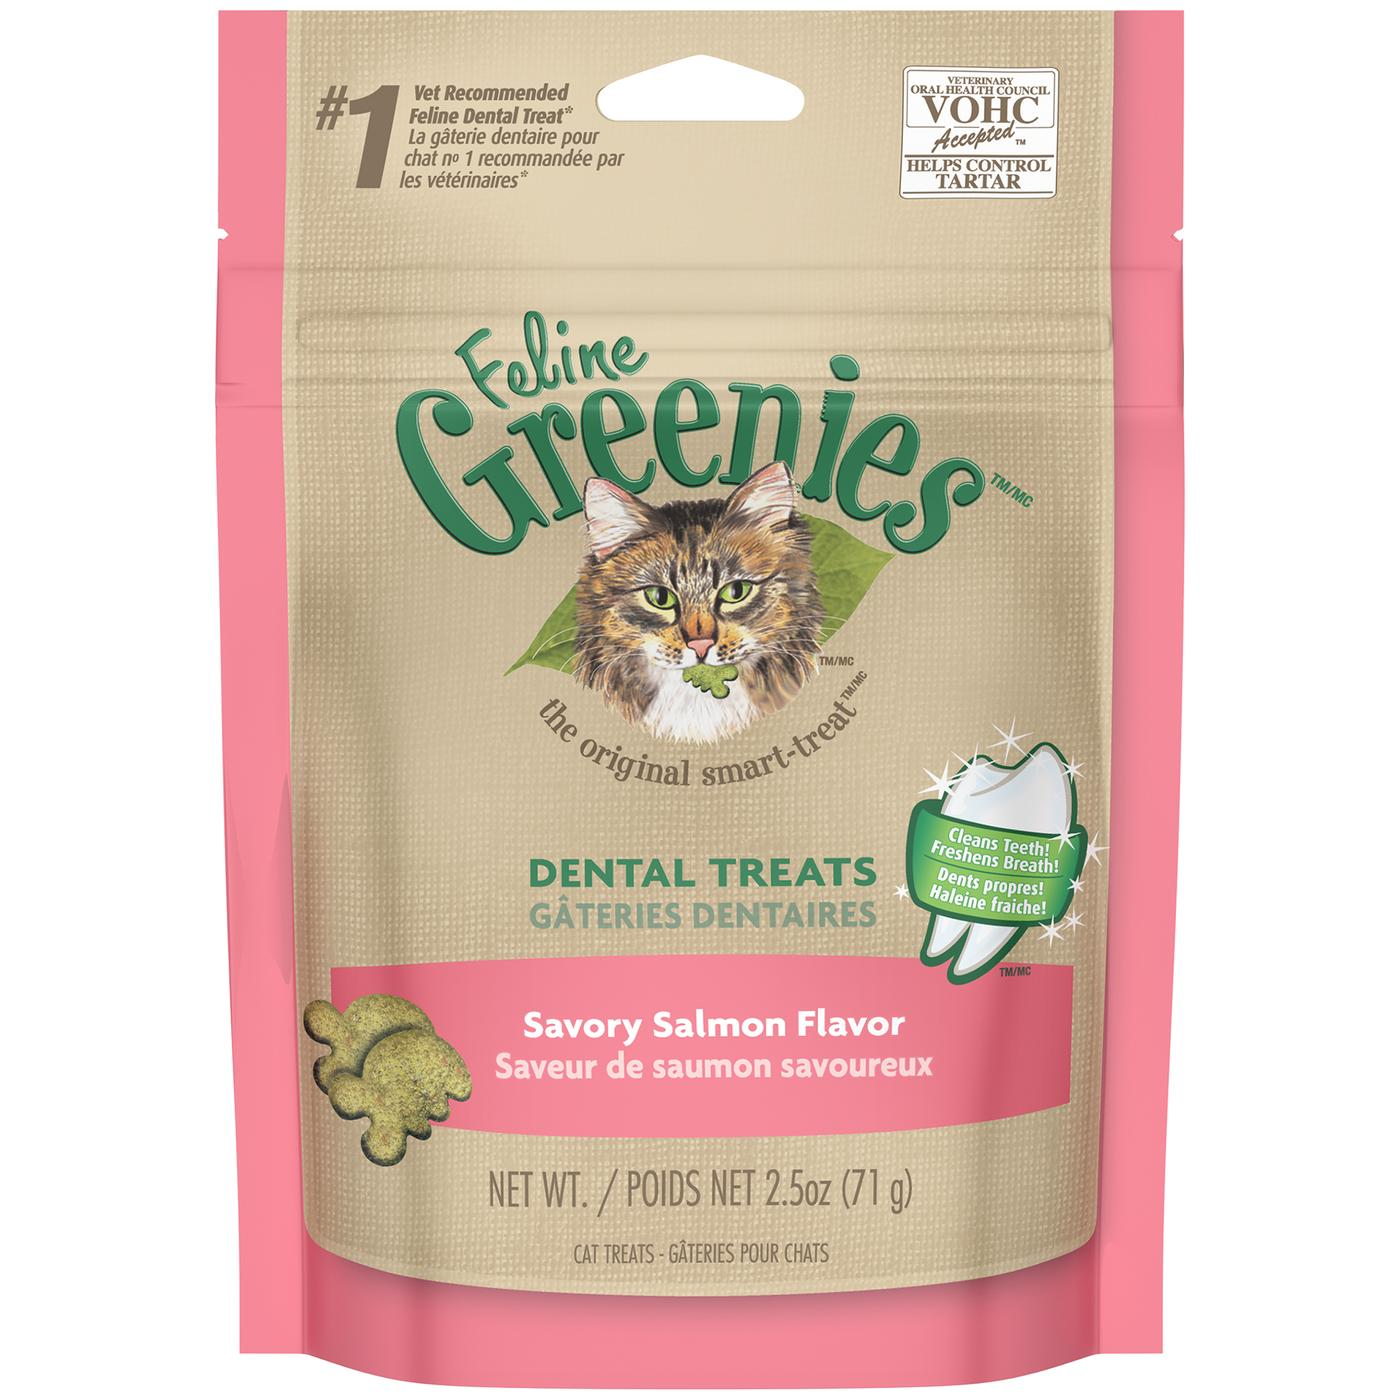 Feline Greenies Dental Treats For Cats Savory Salmon Flavor 2.5 Oz.